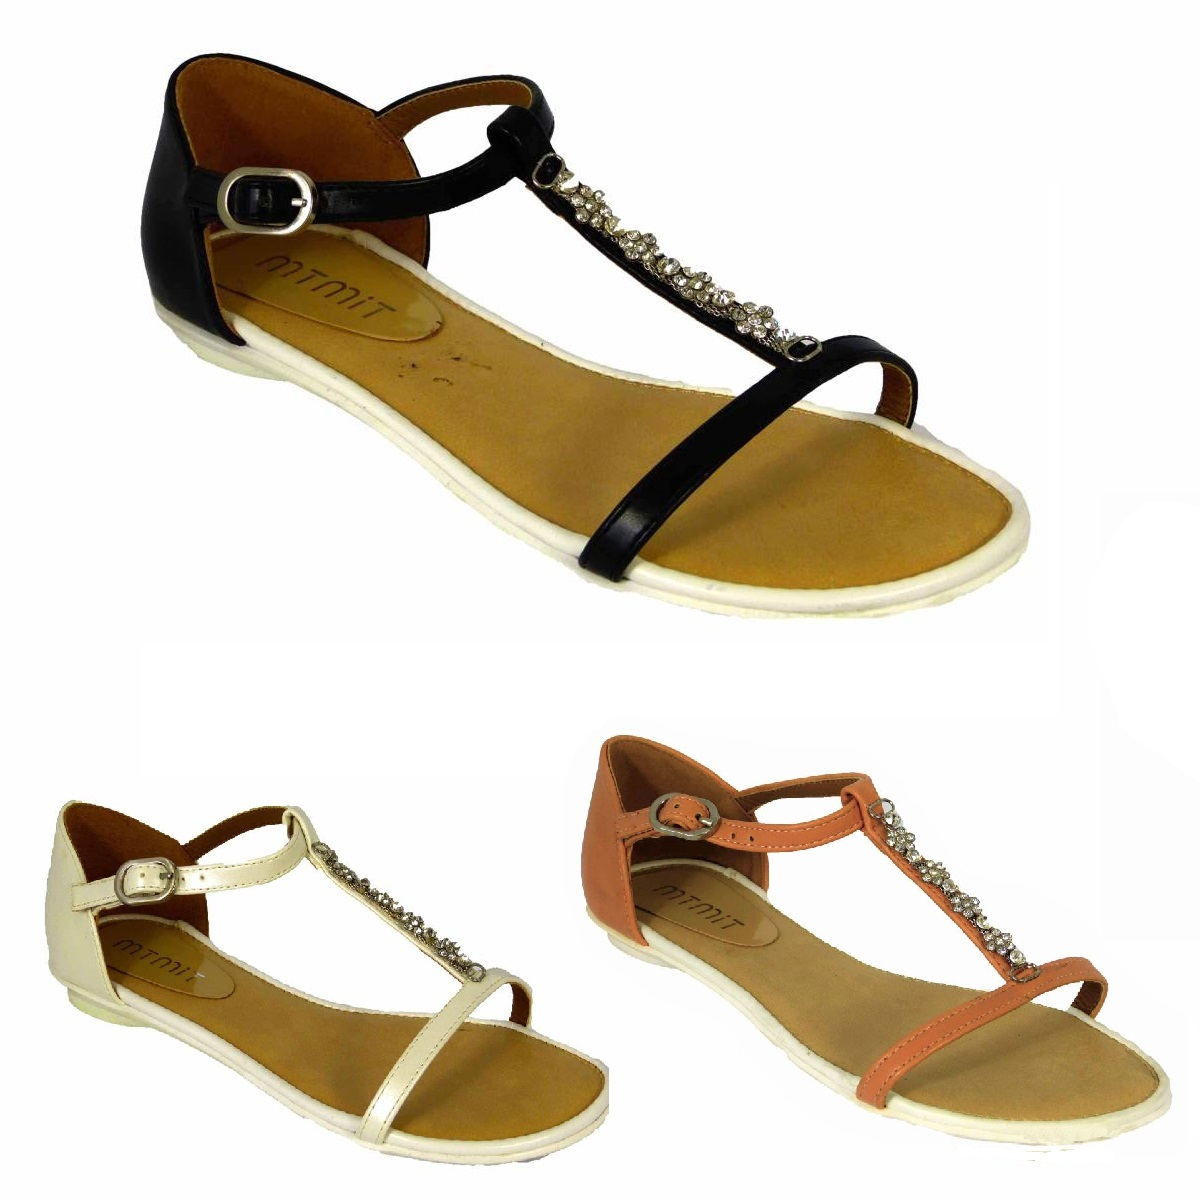 Ladies Womens New Mid Wedge Heel Ankle Strap Summer Gladiator Sandals Shoes Size